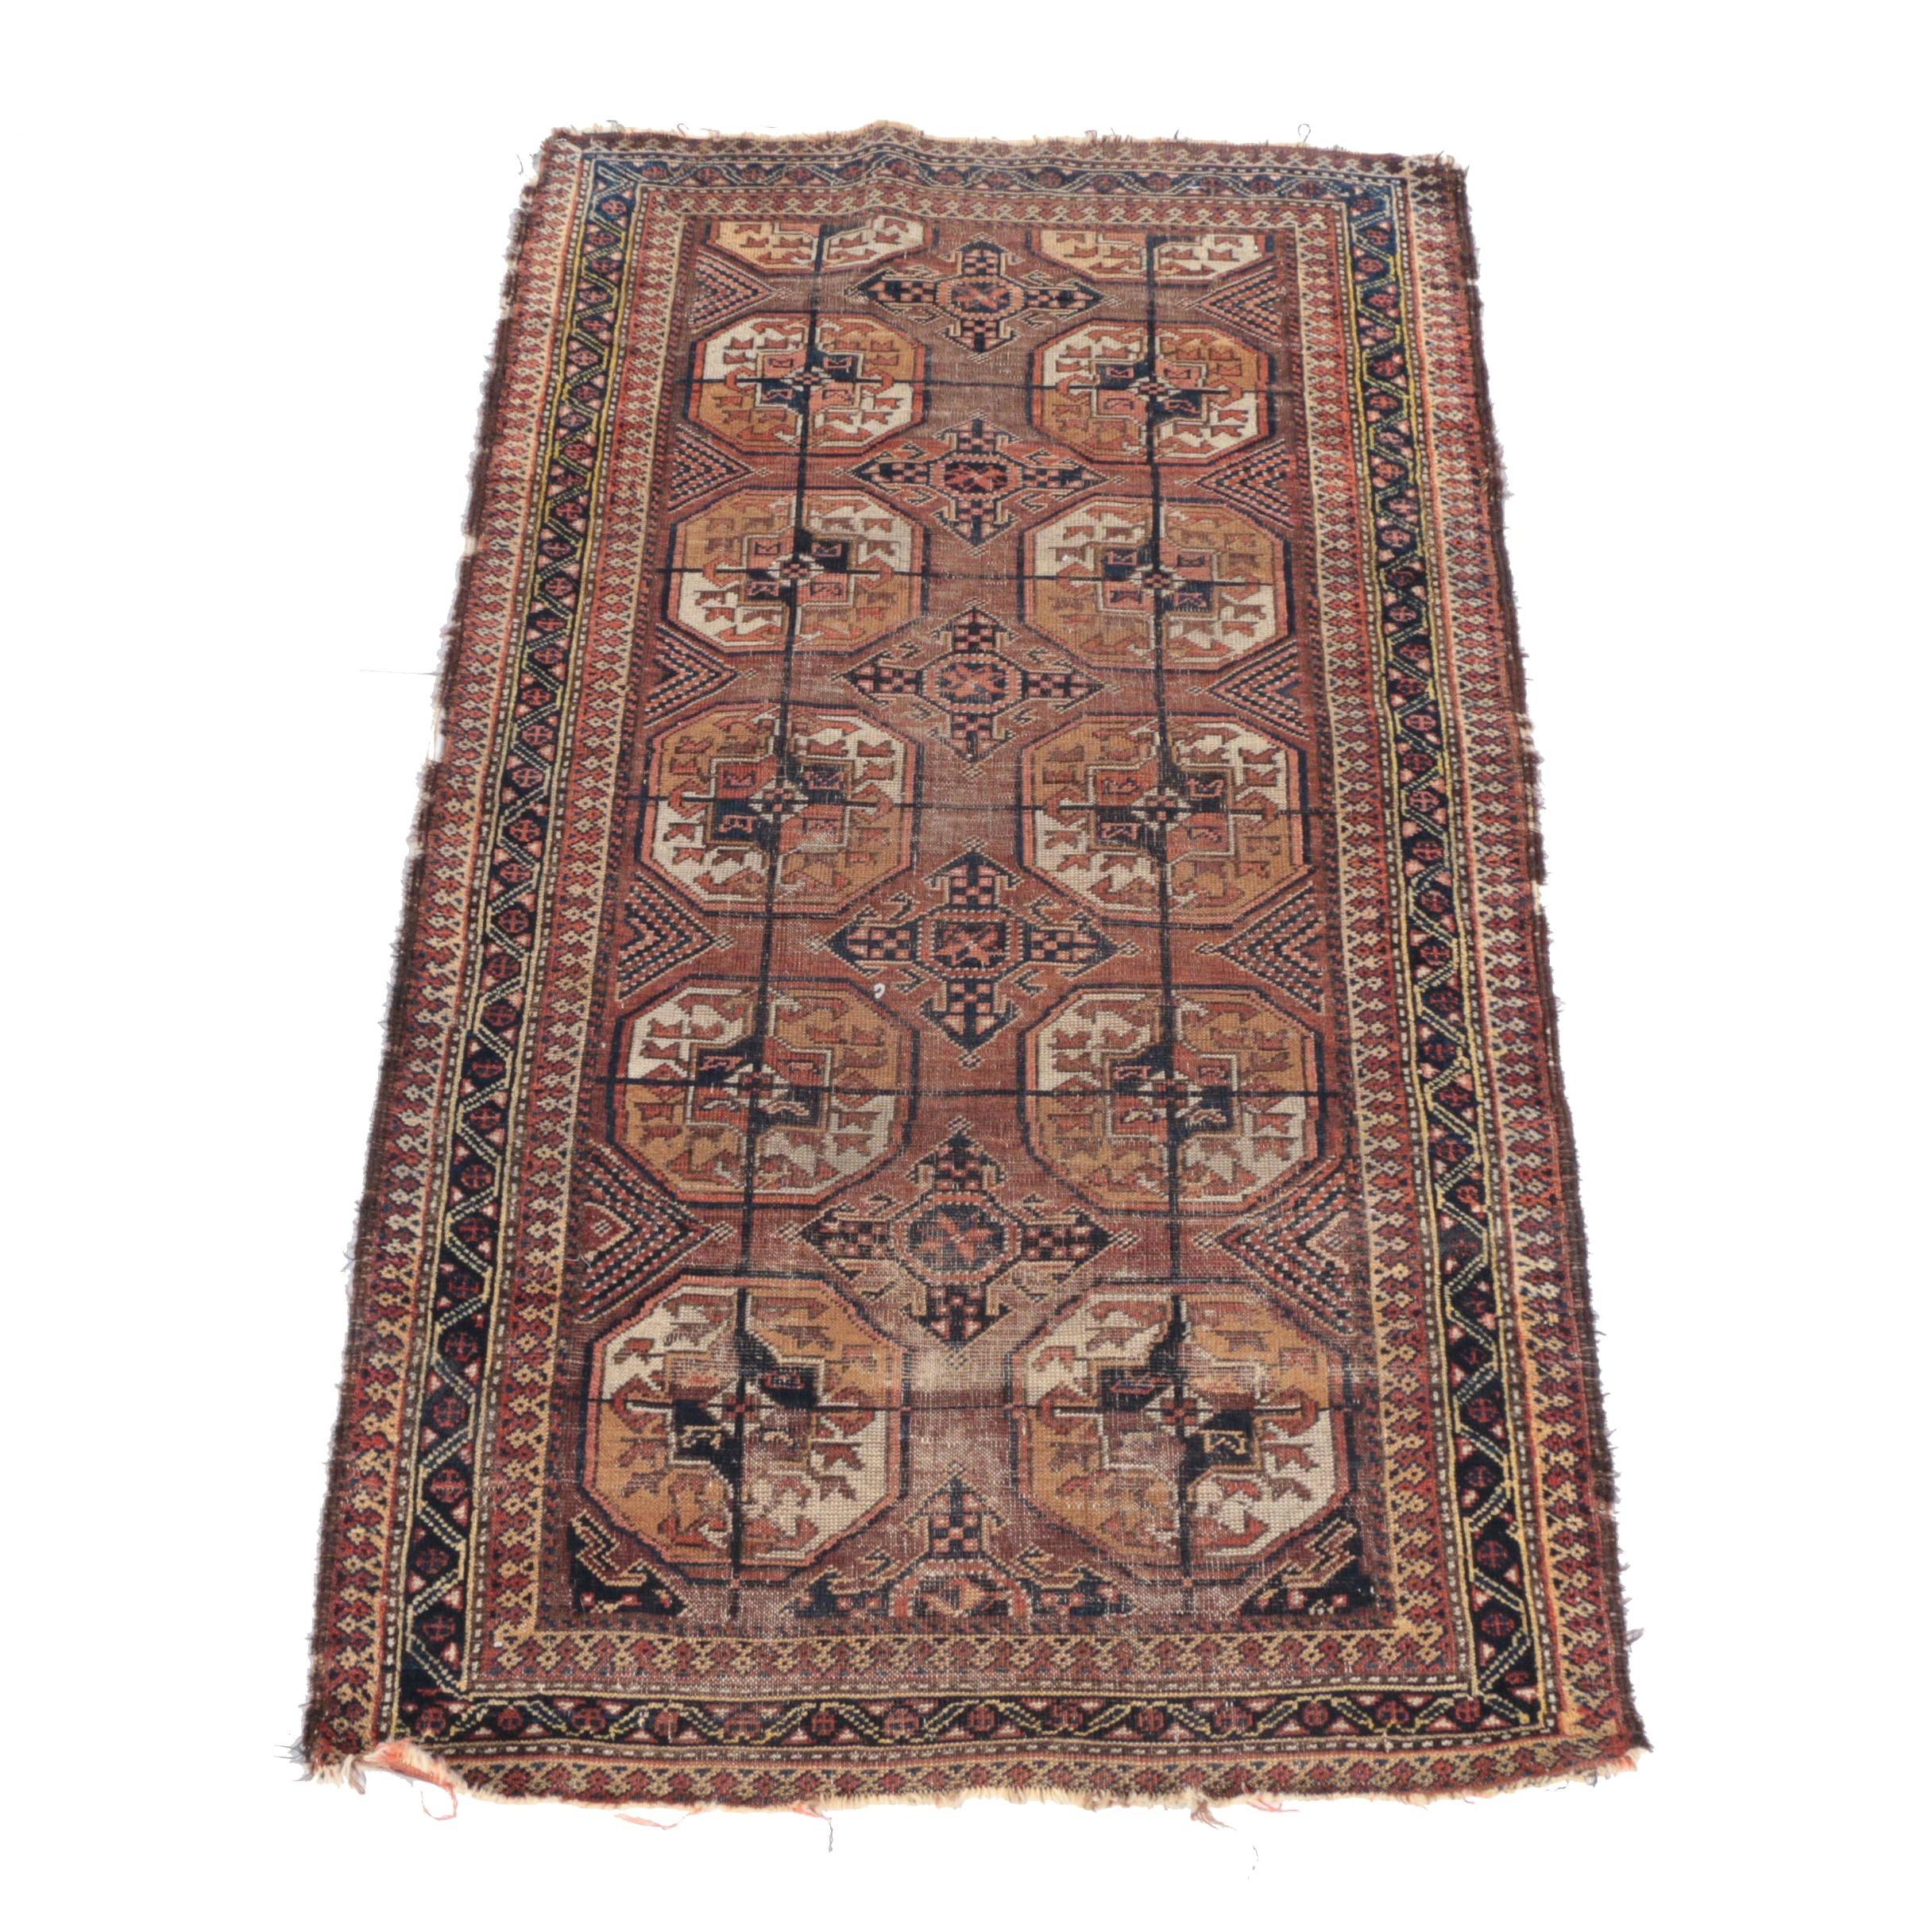 Antique Hand-Knotted Tekke Bokhara Area Rug